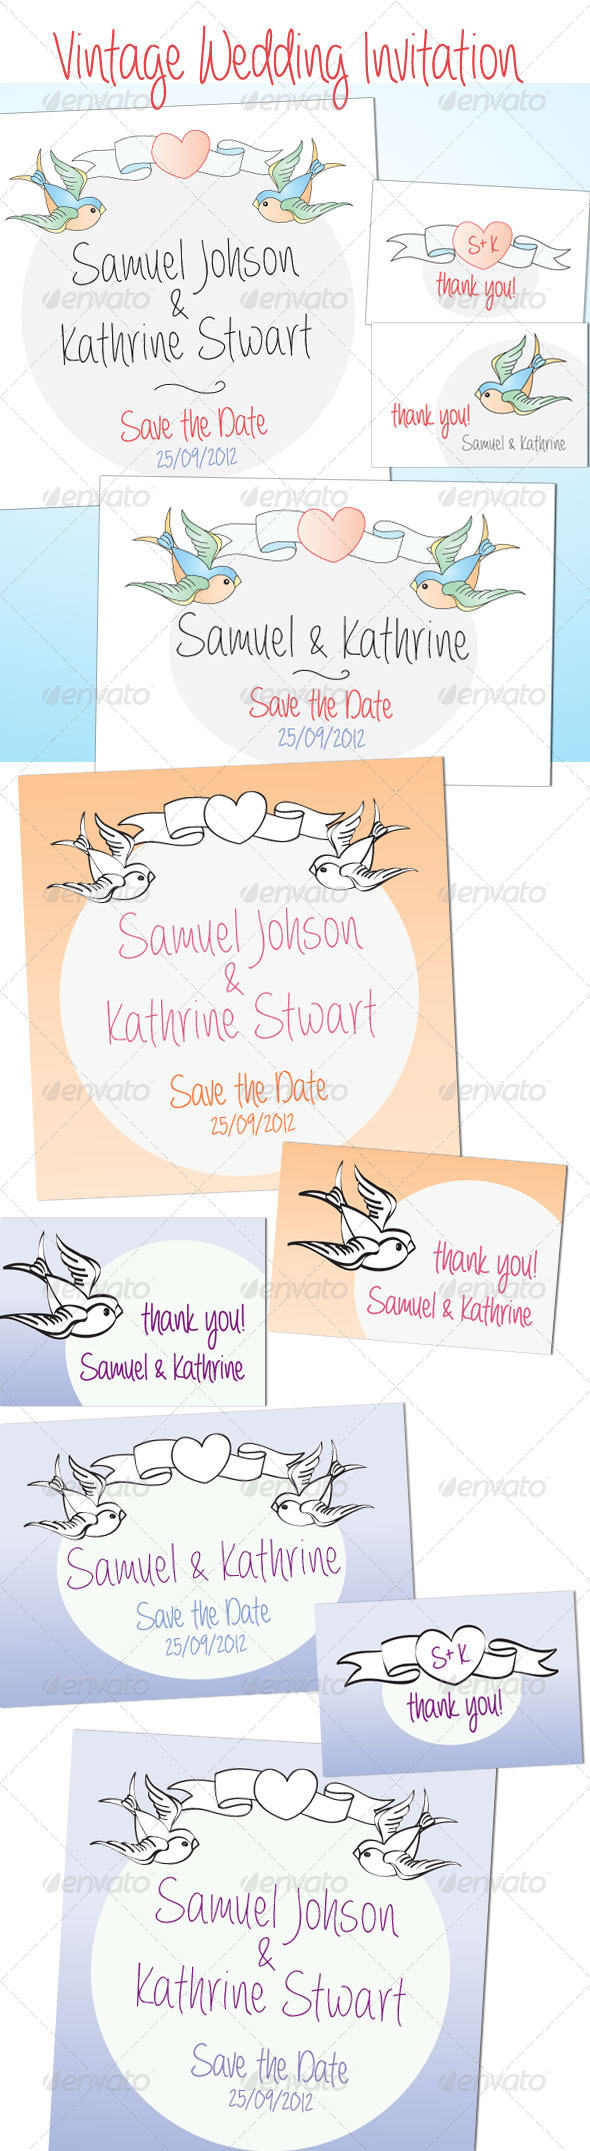 Vintage Wedding Invitation and Cards - Cards & Invites Print Templates